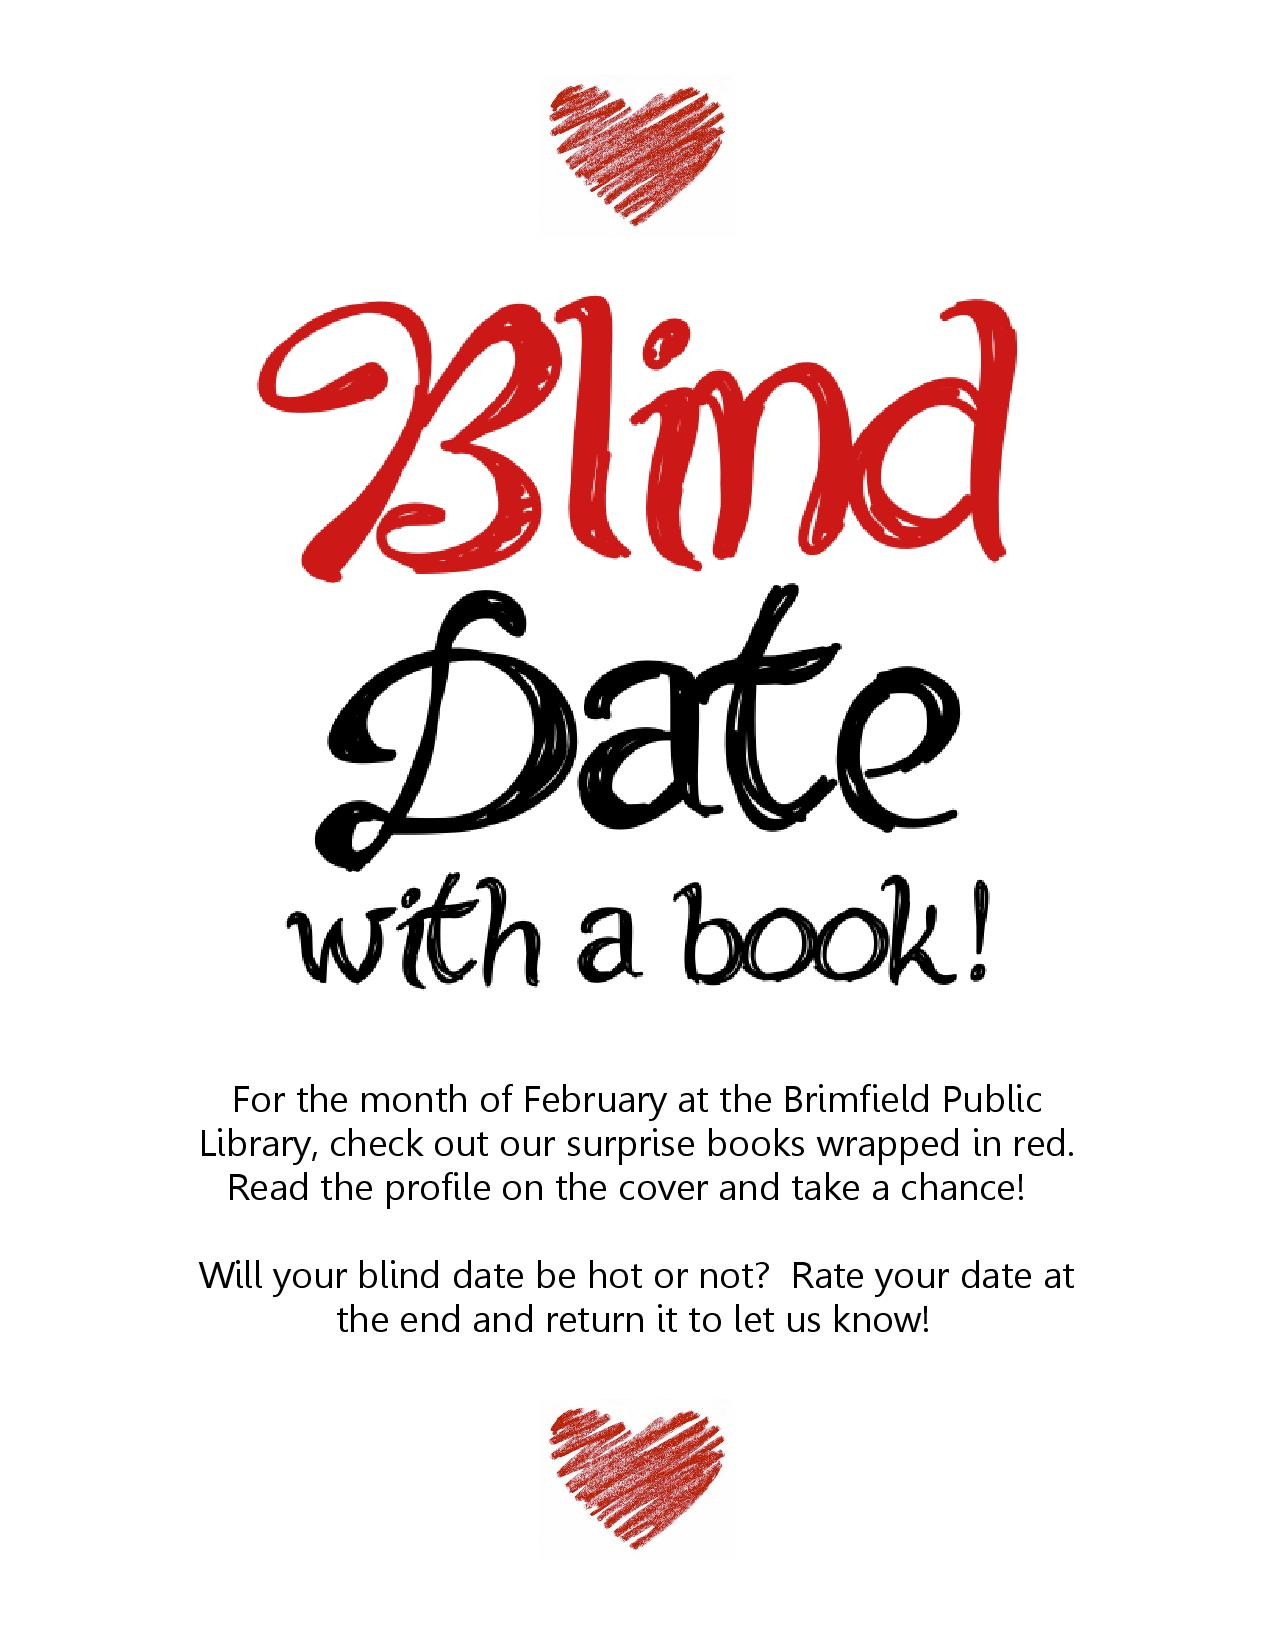 Blind Date With a Book at the Brimfield Public Library